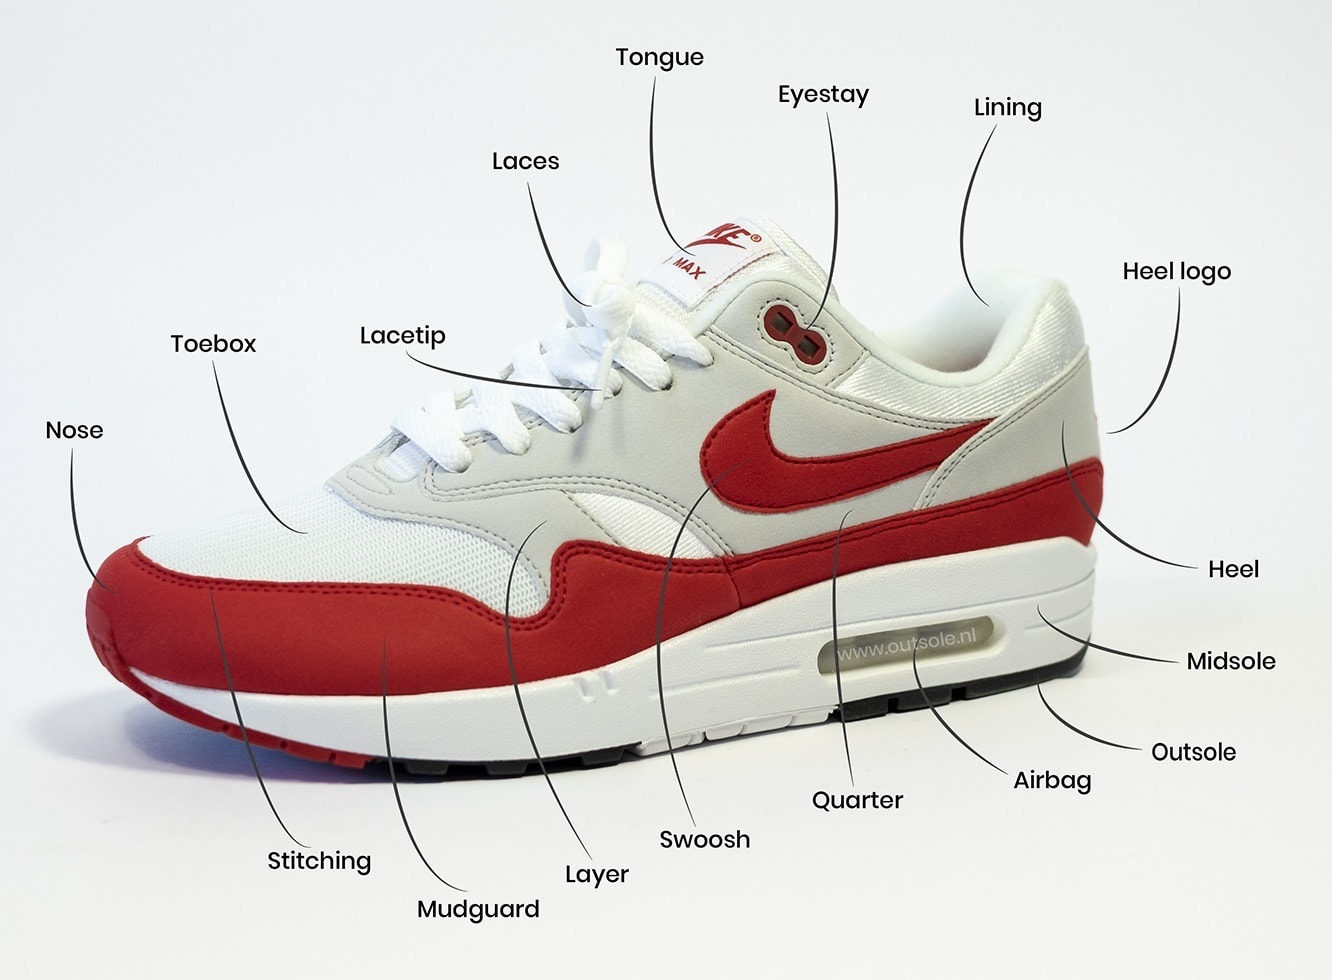 nike air max 1 components parts meaning by outsole toebox eyestay lining layer eyelets laces heel logo lacetip toebox mudguard overlay toe roll - Frequently Asked Questions